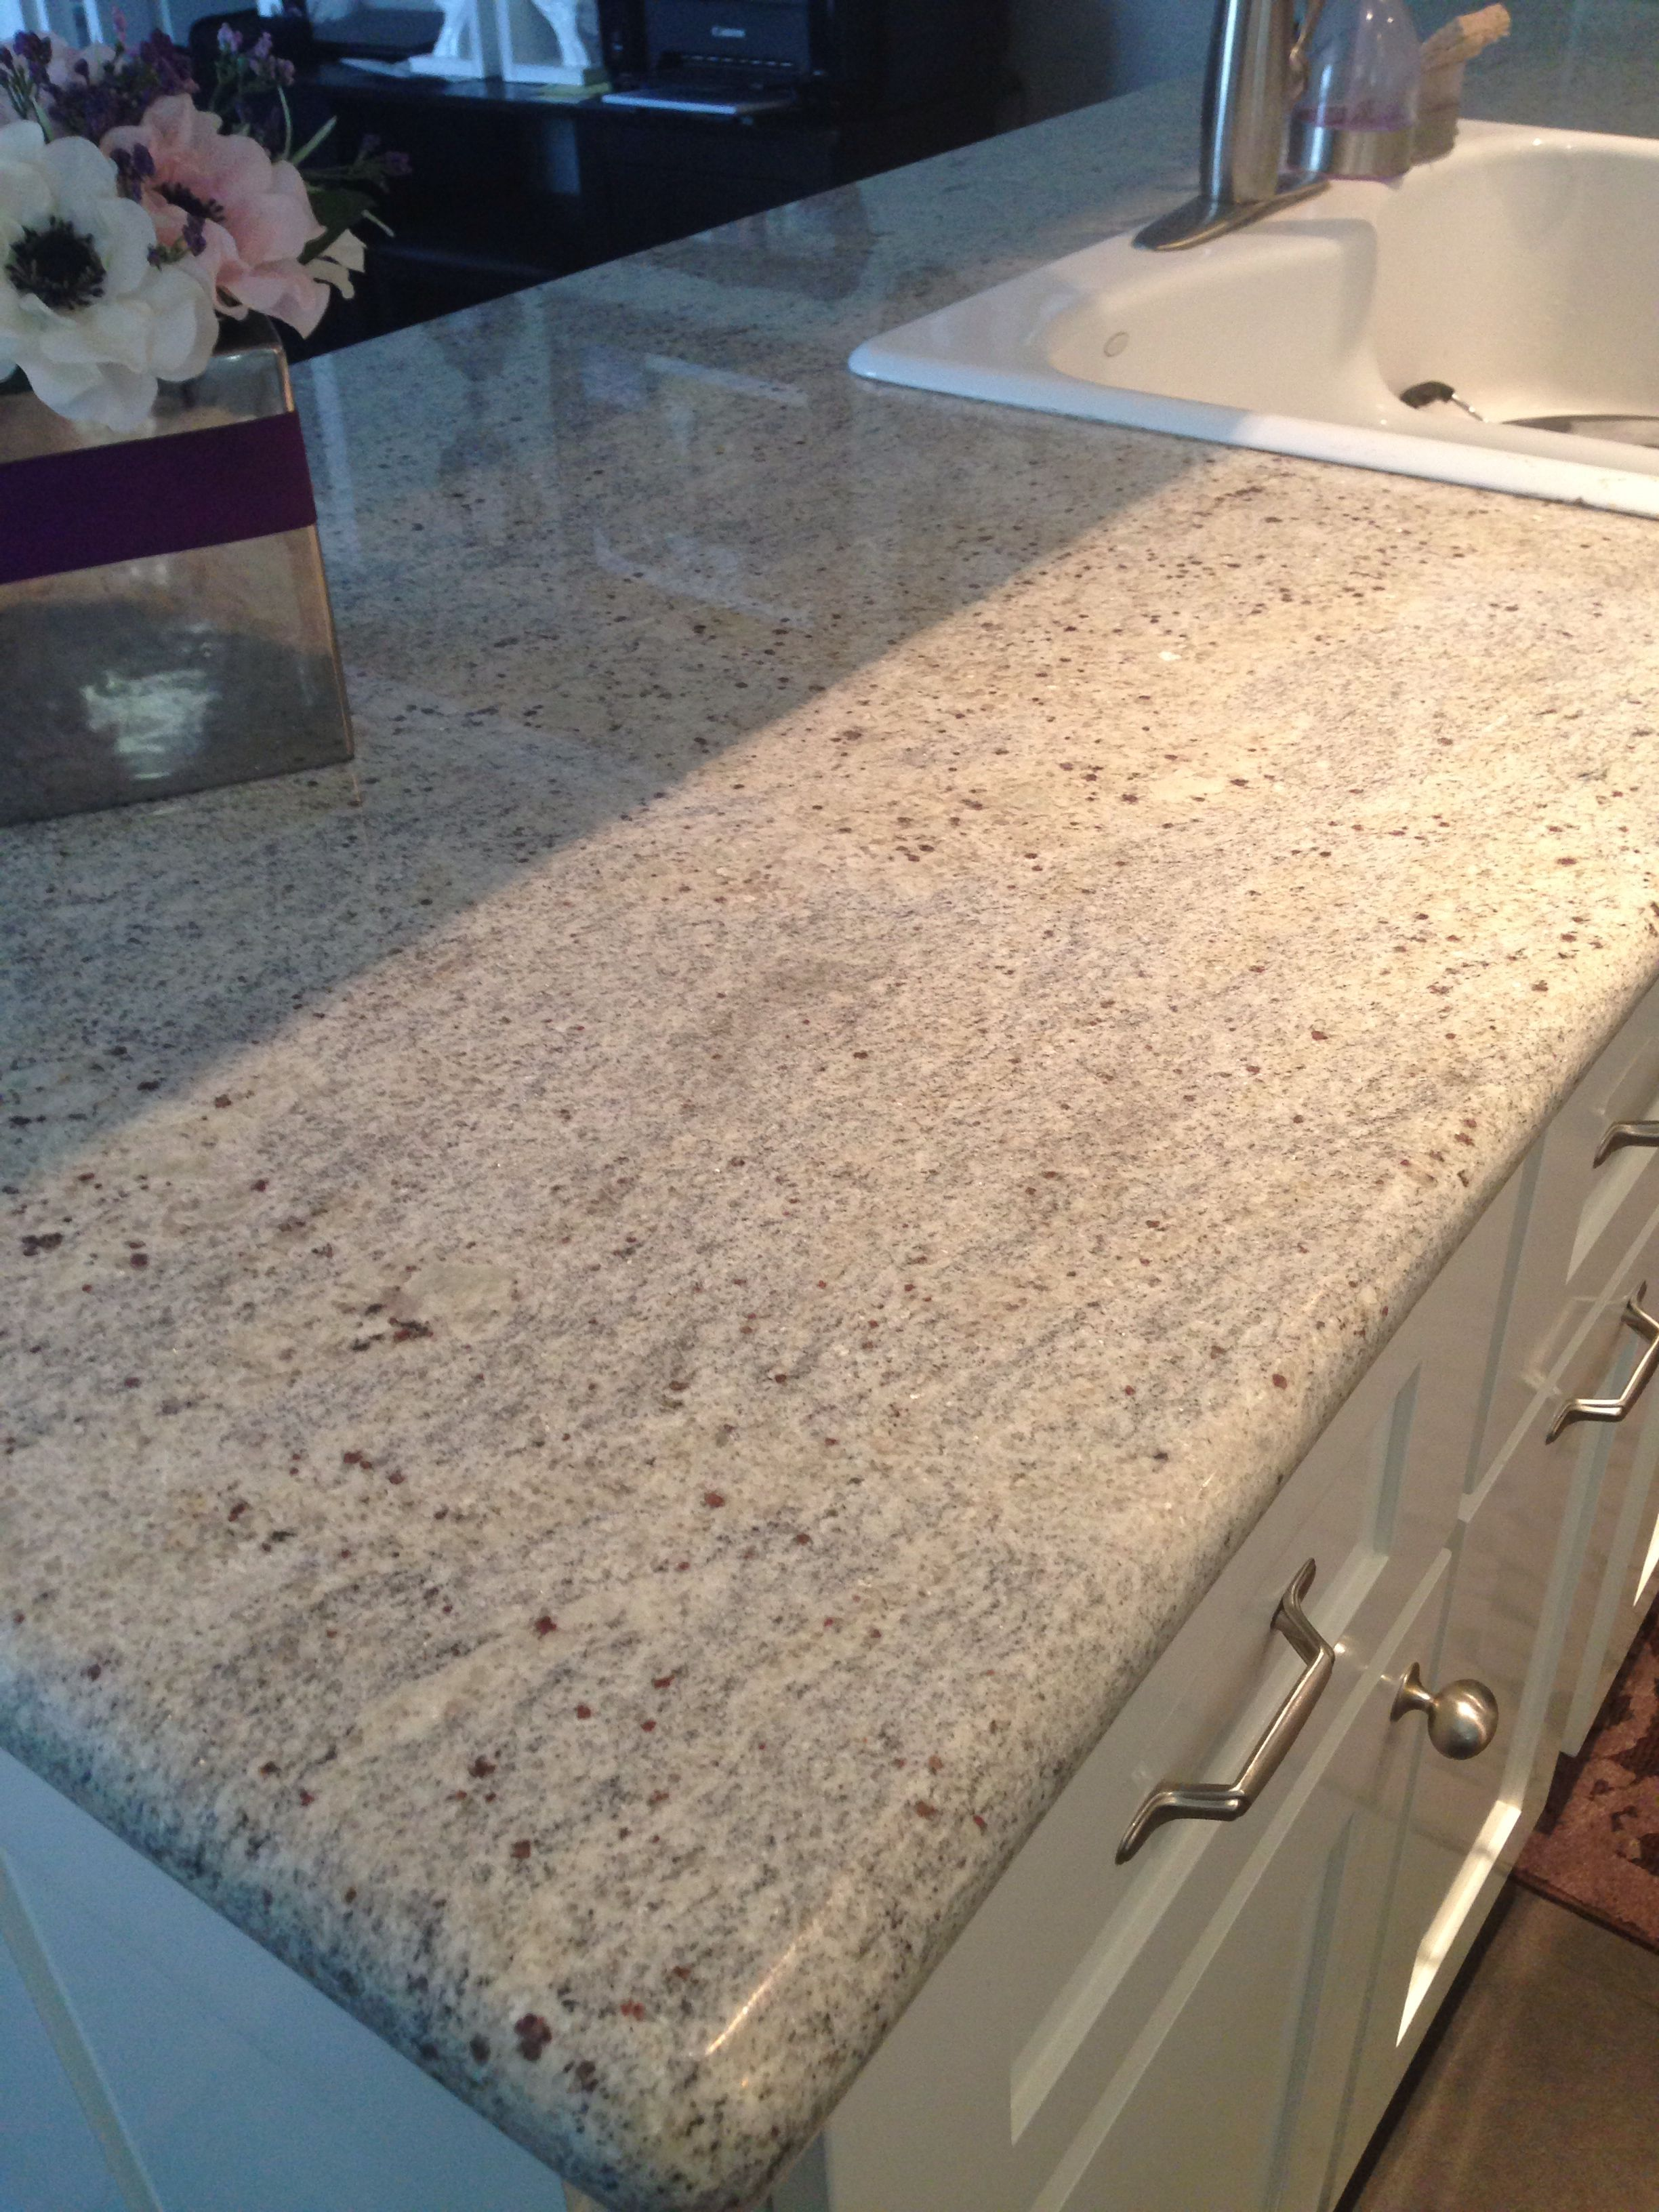 Kashmir White Granite Quartz Sparkle Varies From Slab To Slab